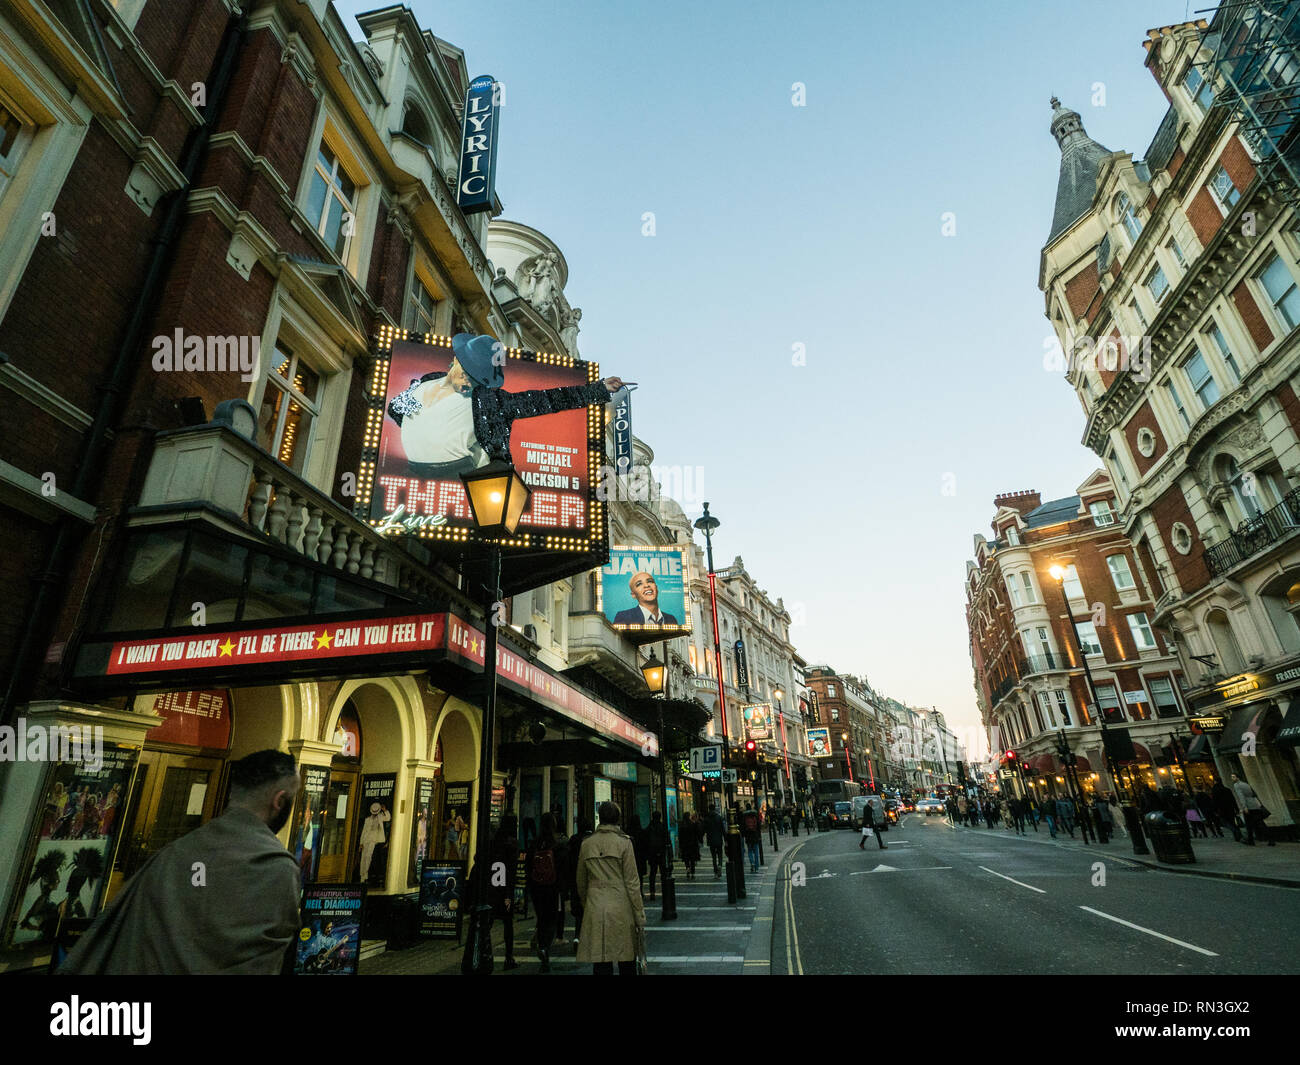 Shaftesbury Avenue, famous for its theatres, London, England - Stock Image